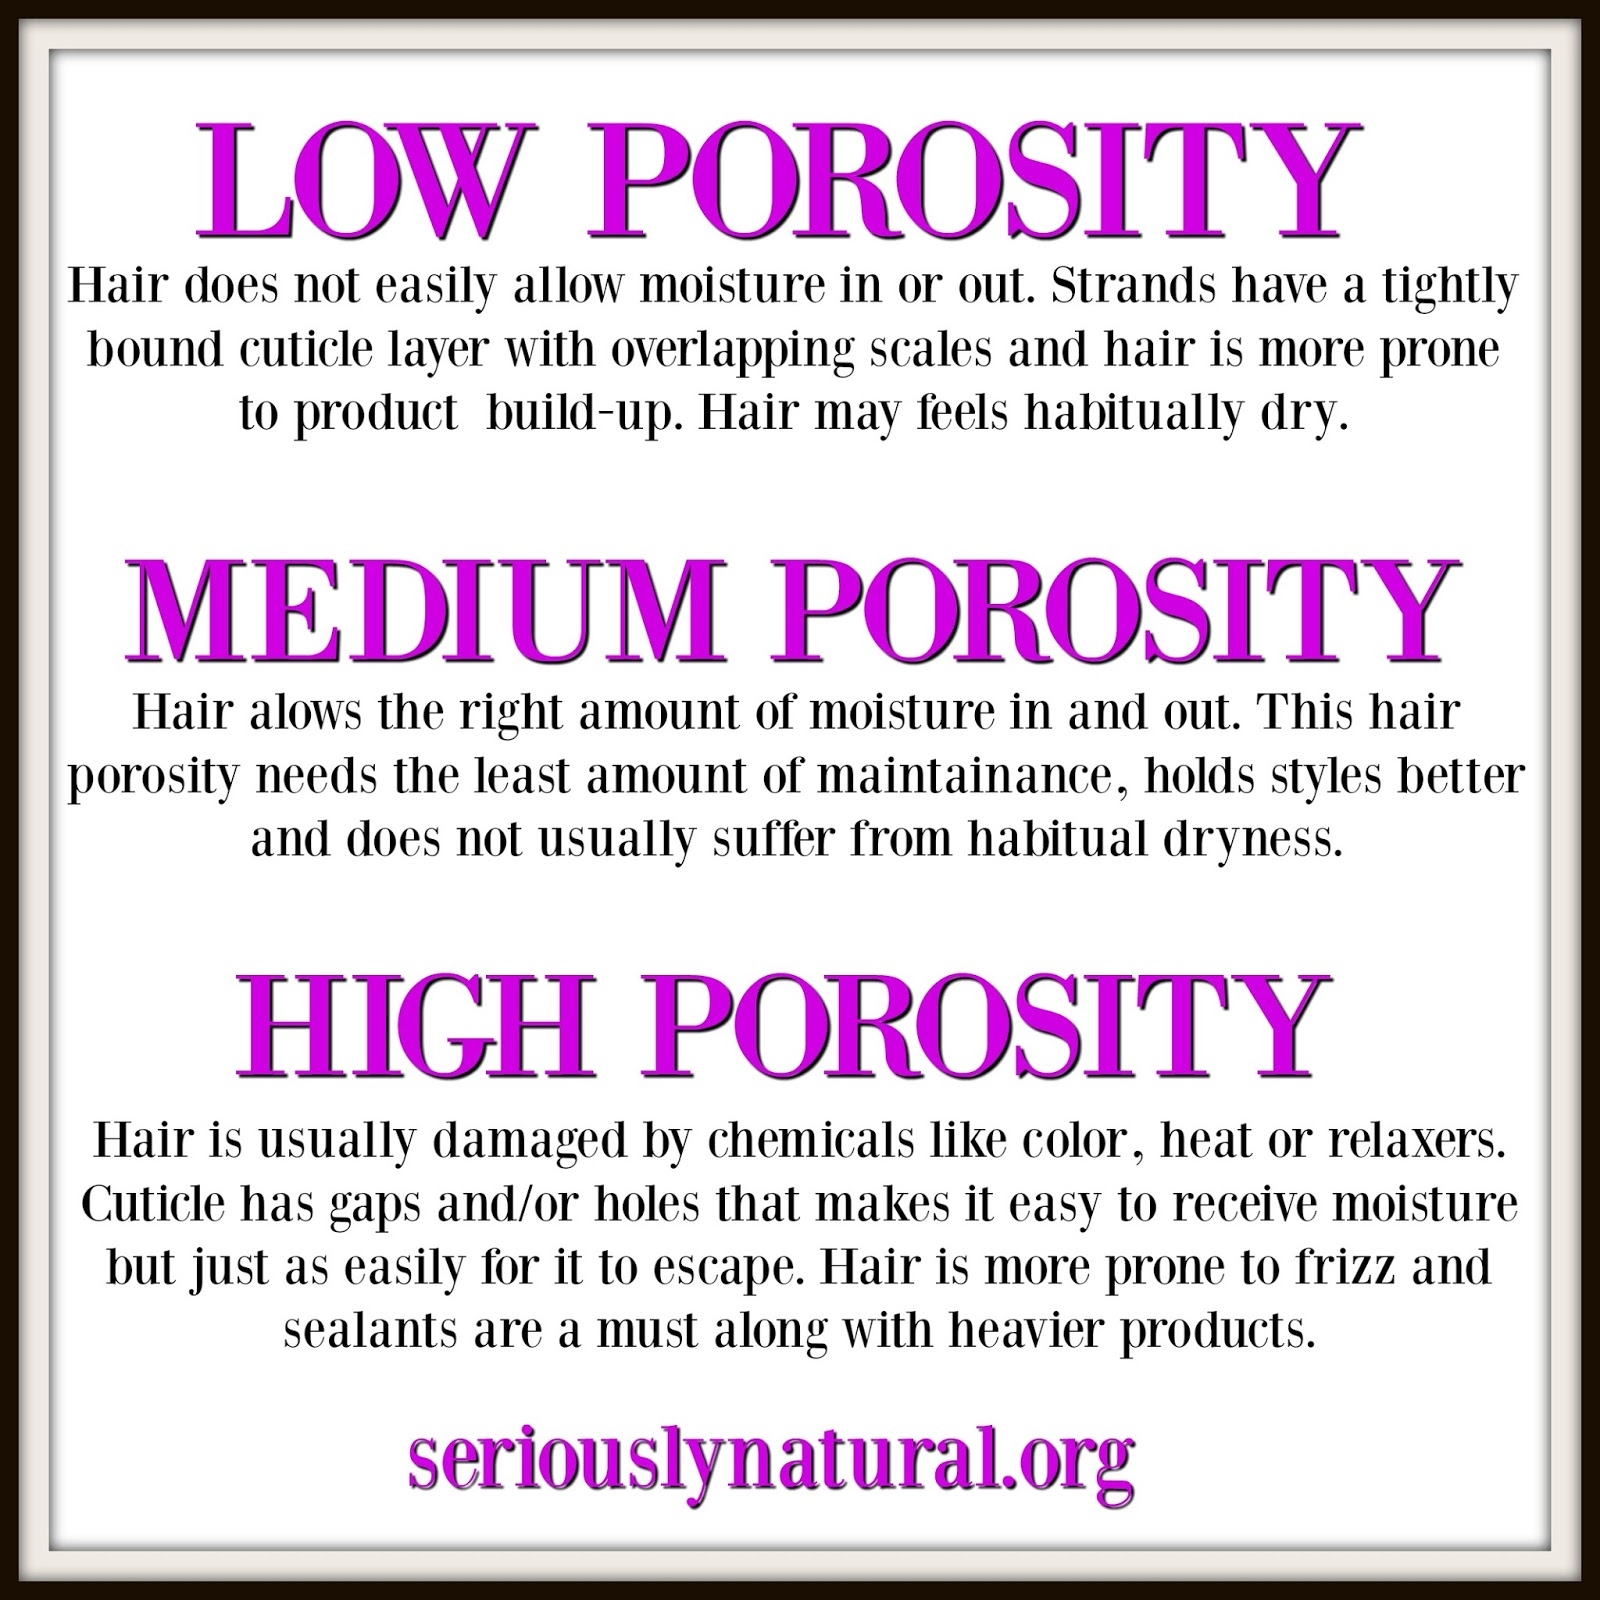 Hair porosity ishow well hair is able to absorb and hold onto moisture. There is low, medium and high and all three affect your hair.